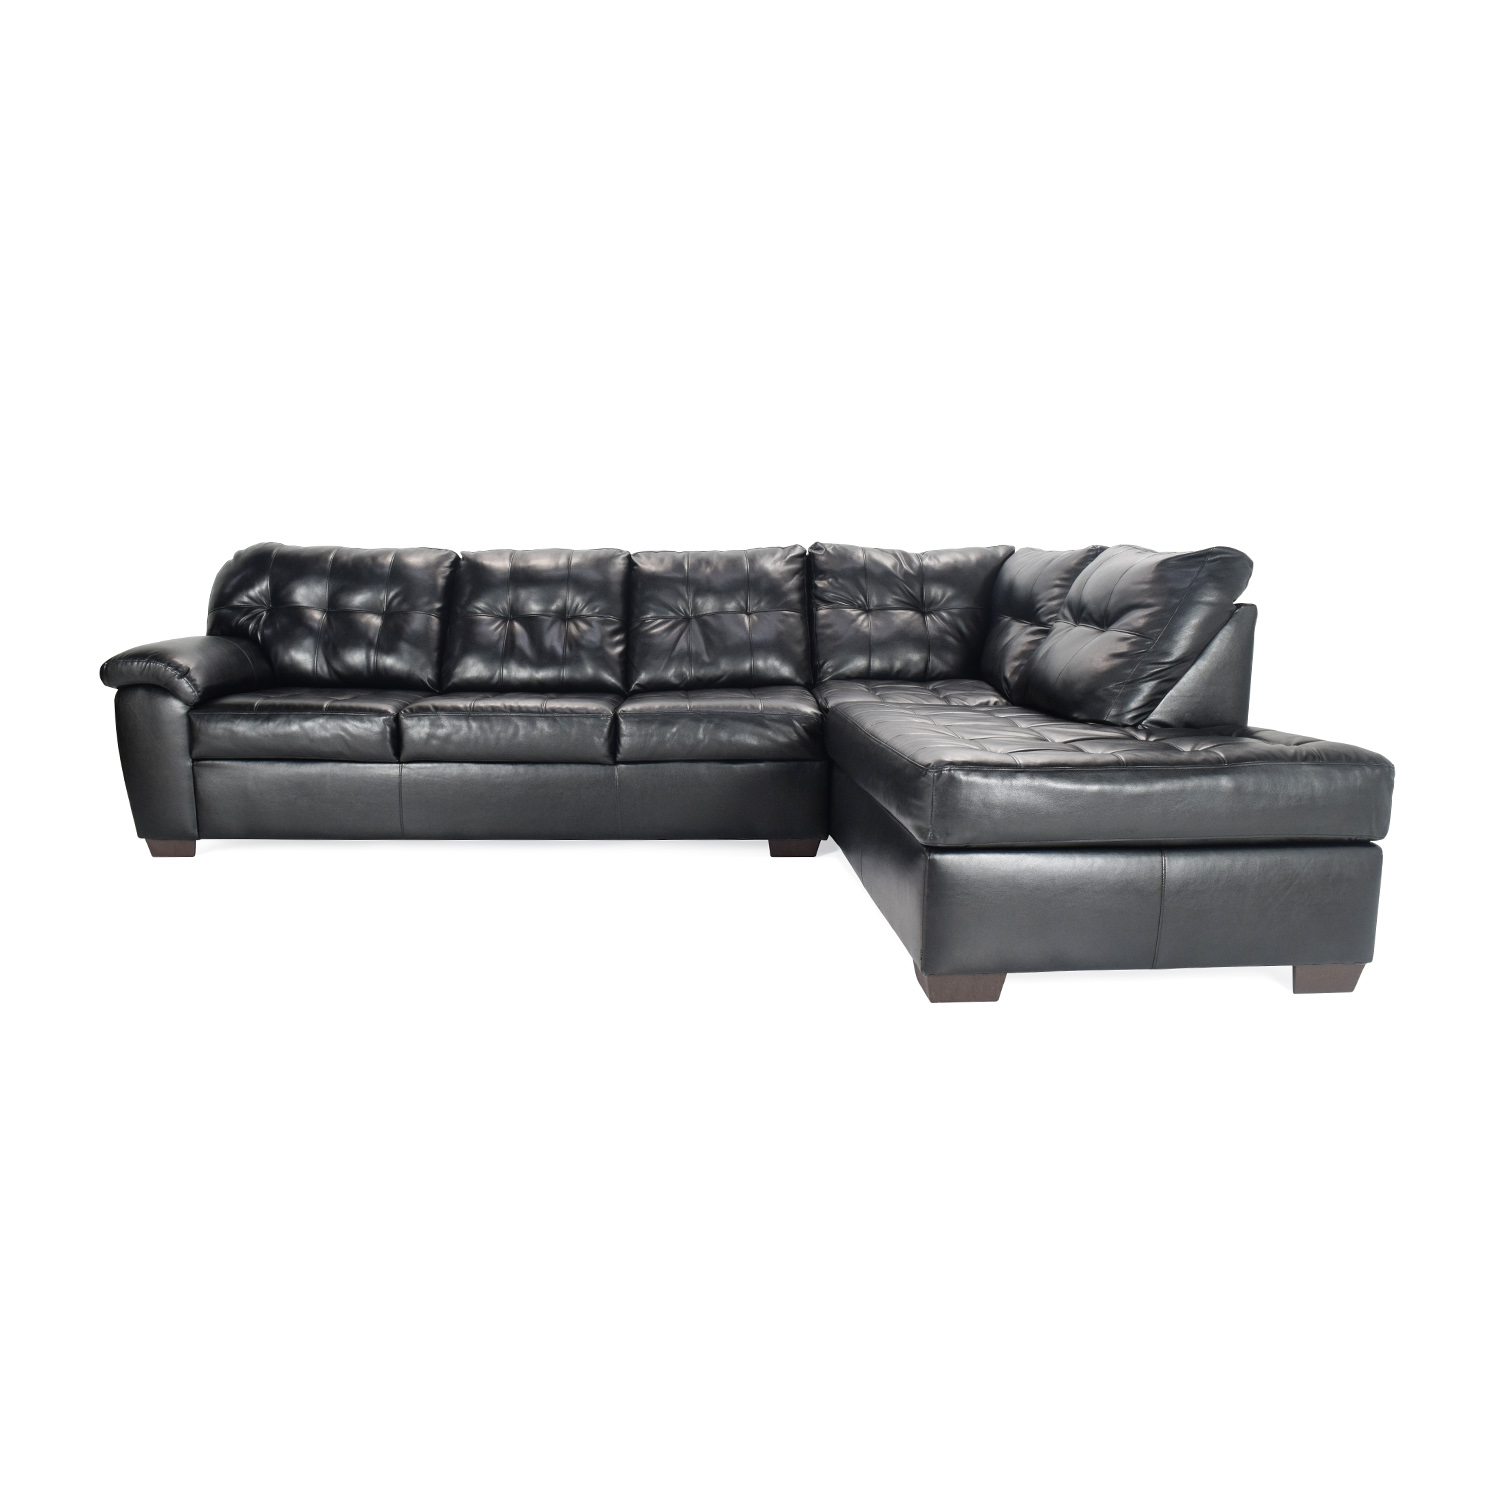 51 Off Bob S Discount Furniture Black Faux Leather Sectional Sofas